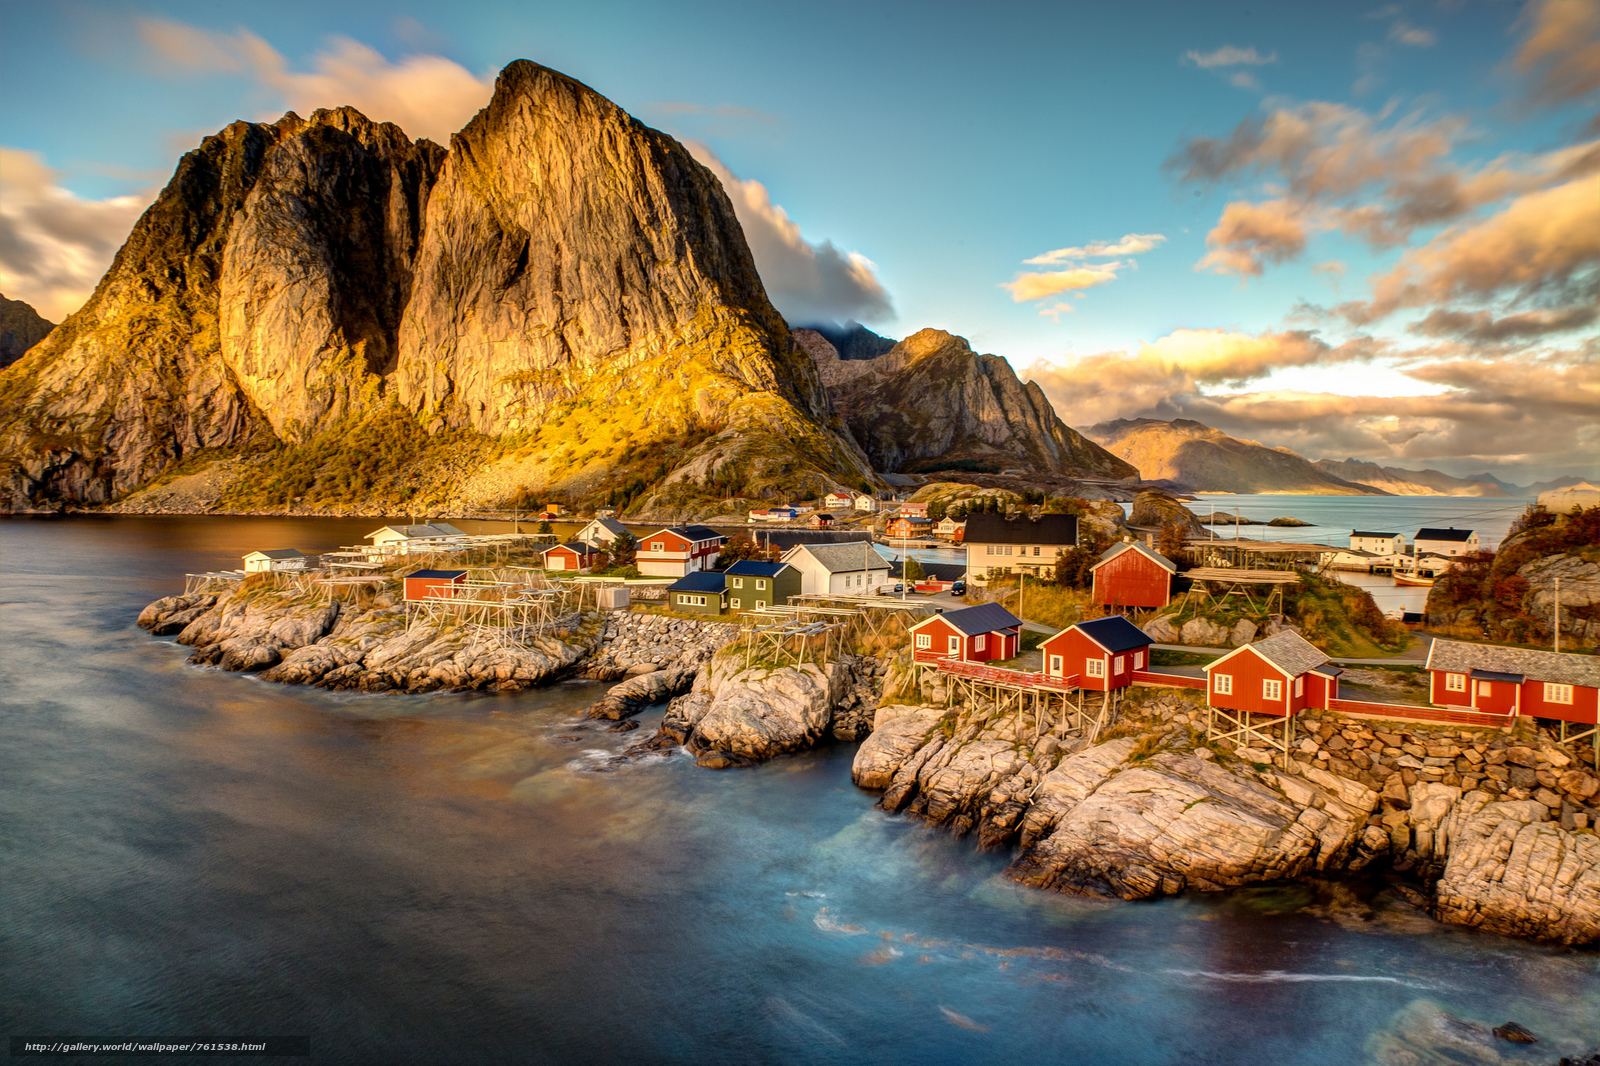 Lofoten, The Rhine, Queen, Norway, Lofoten, Lofoten Islands